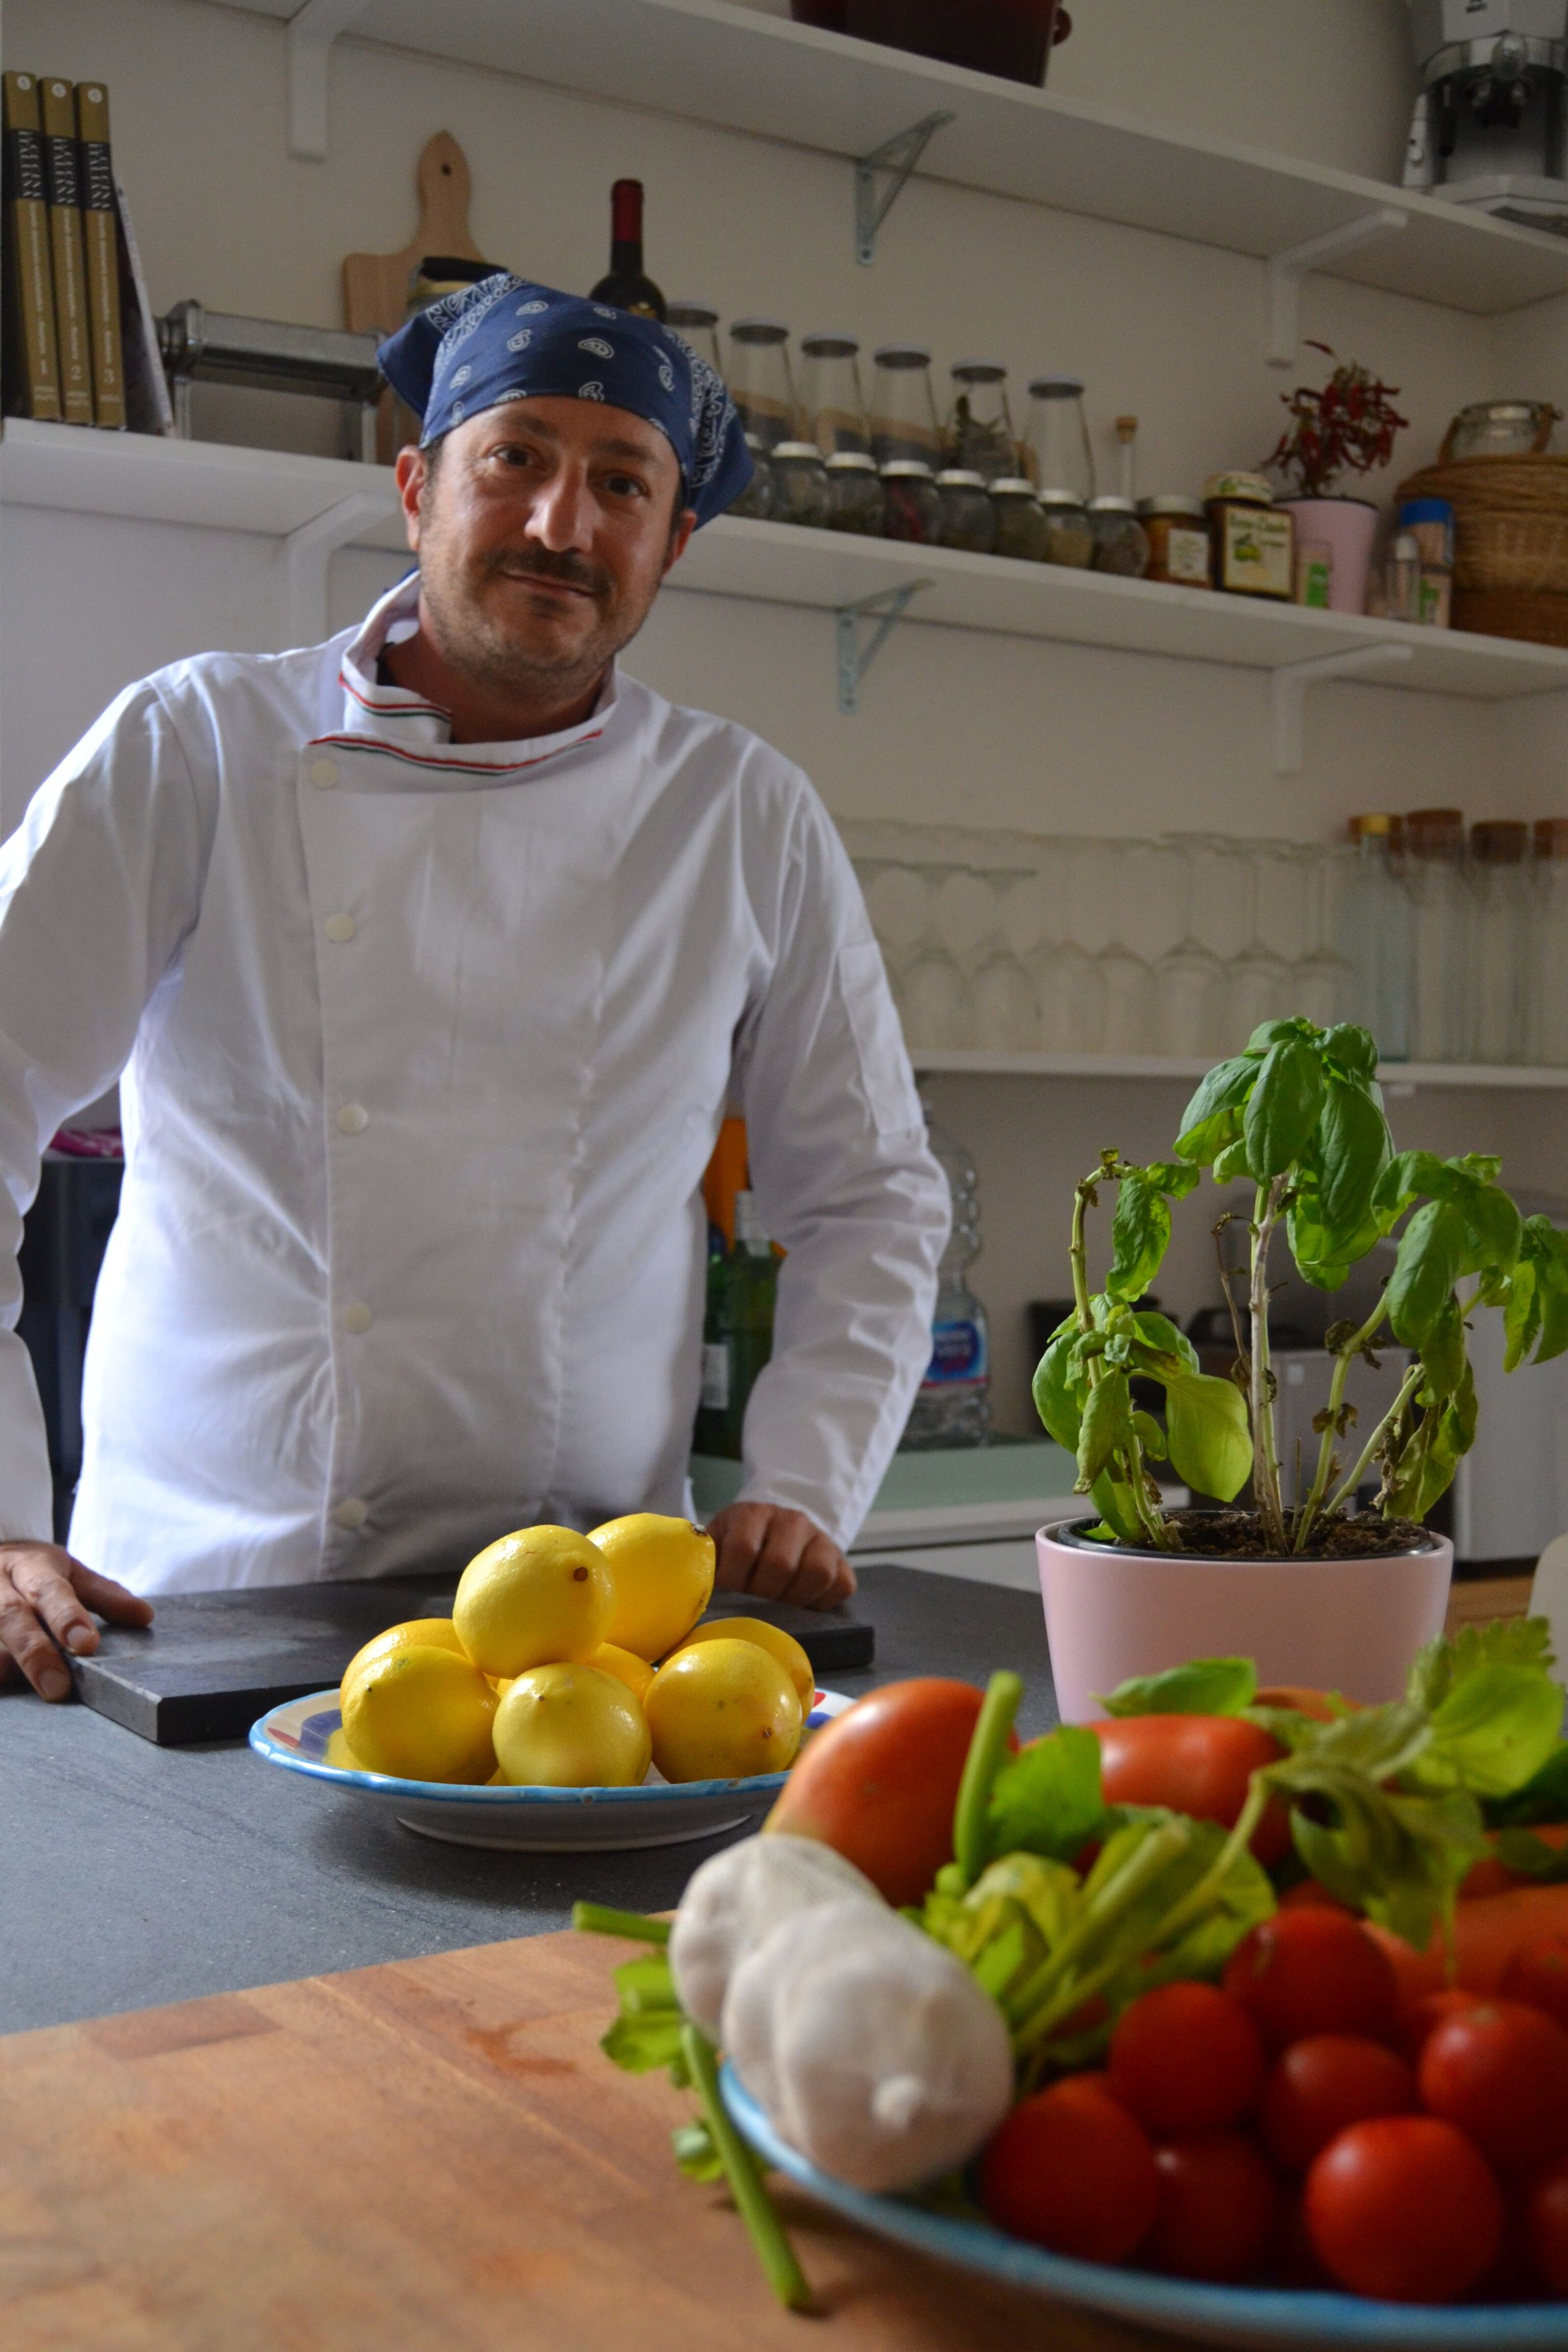 Our very own Chef Luca!